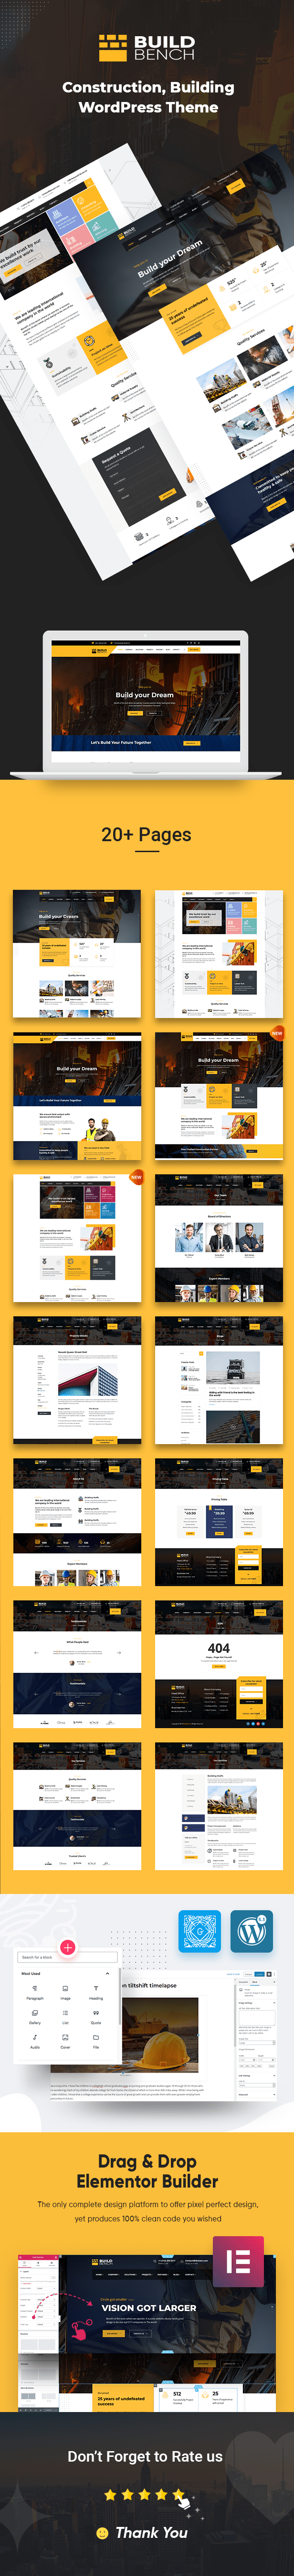 Buildbench WordPress